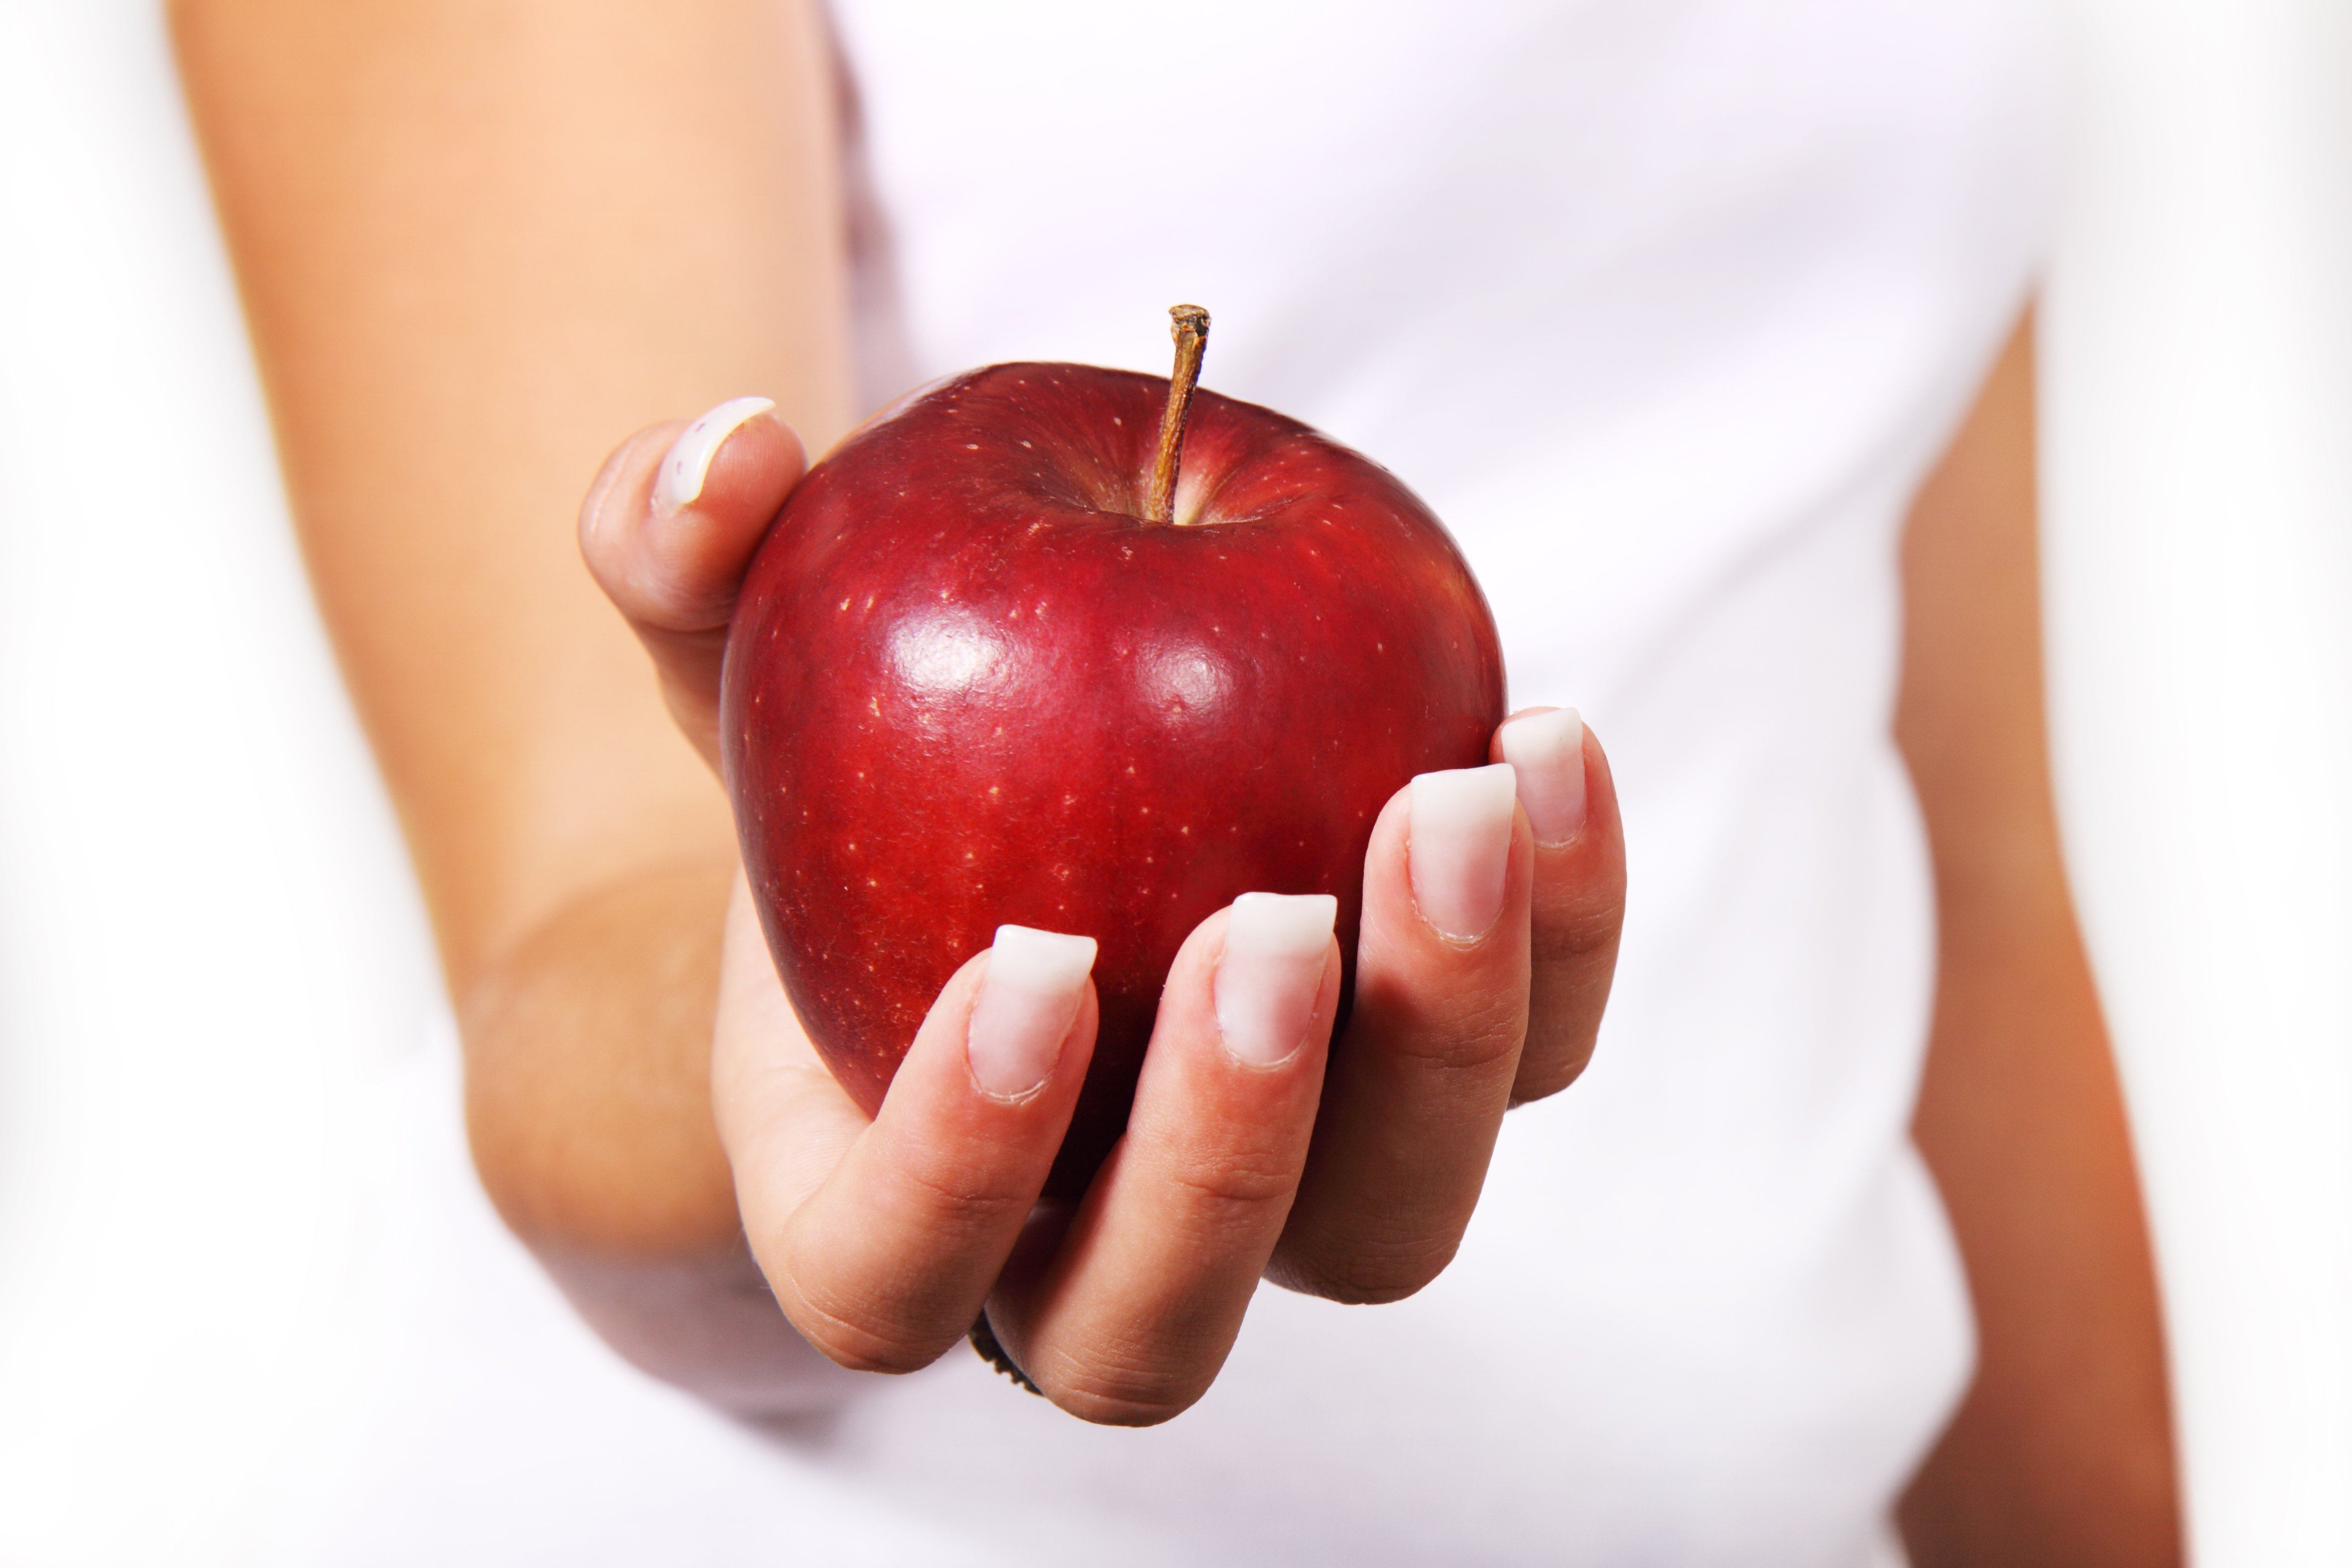 A red apple held in a woman's hand with her arm outstretched as if offering it to the viewer.